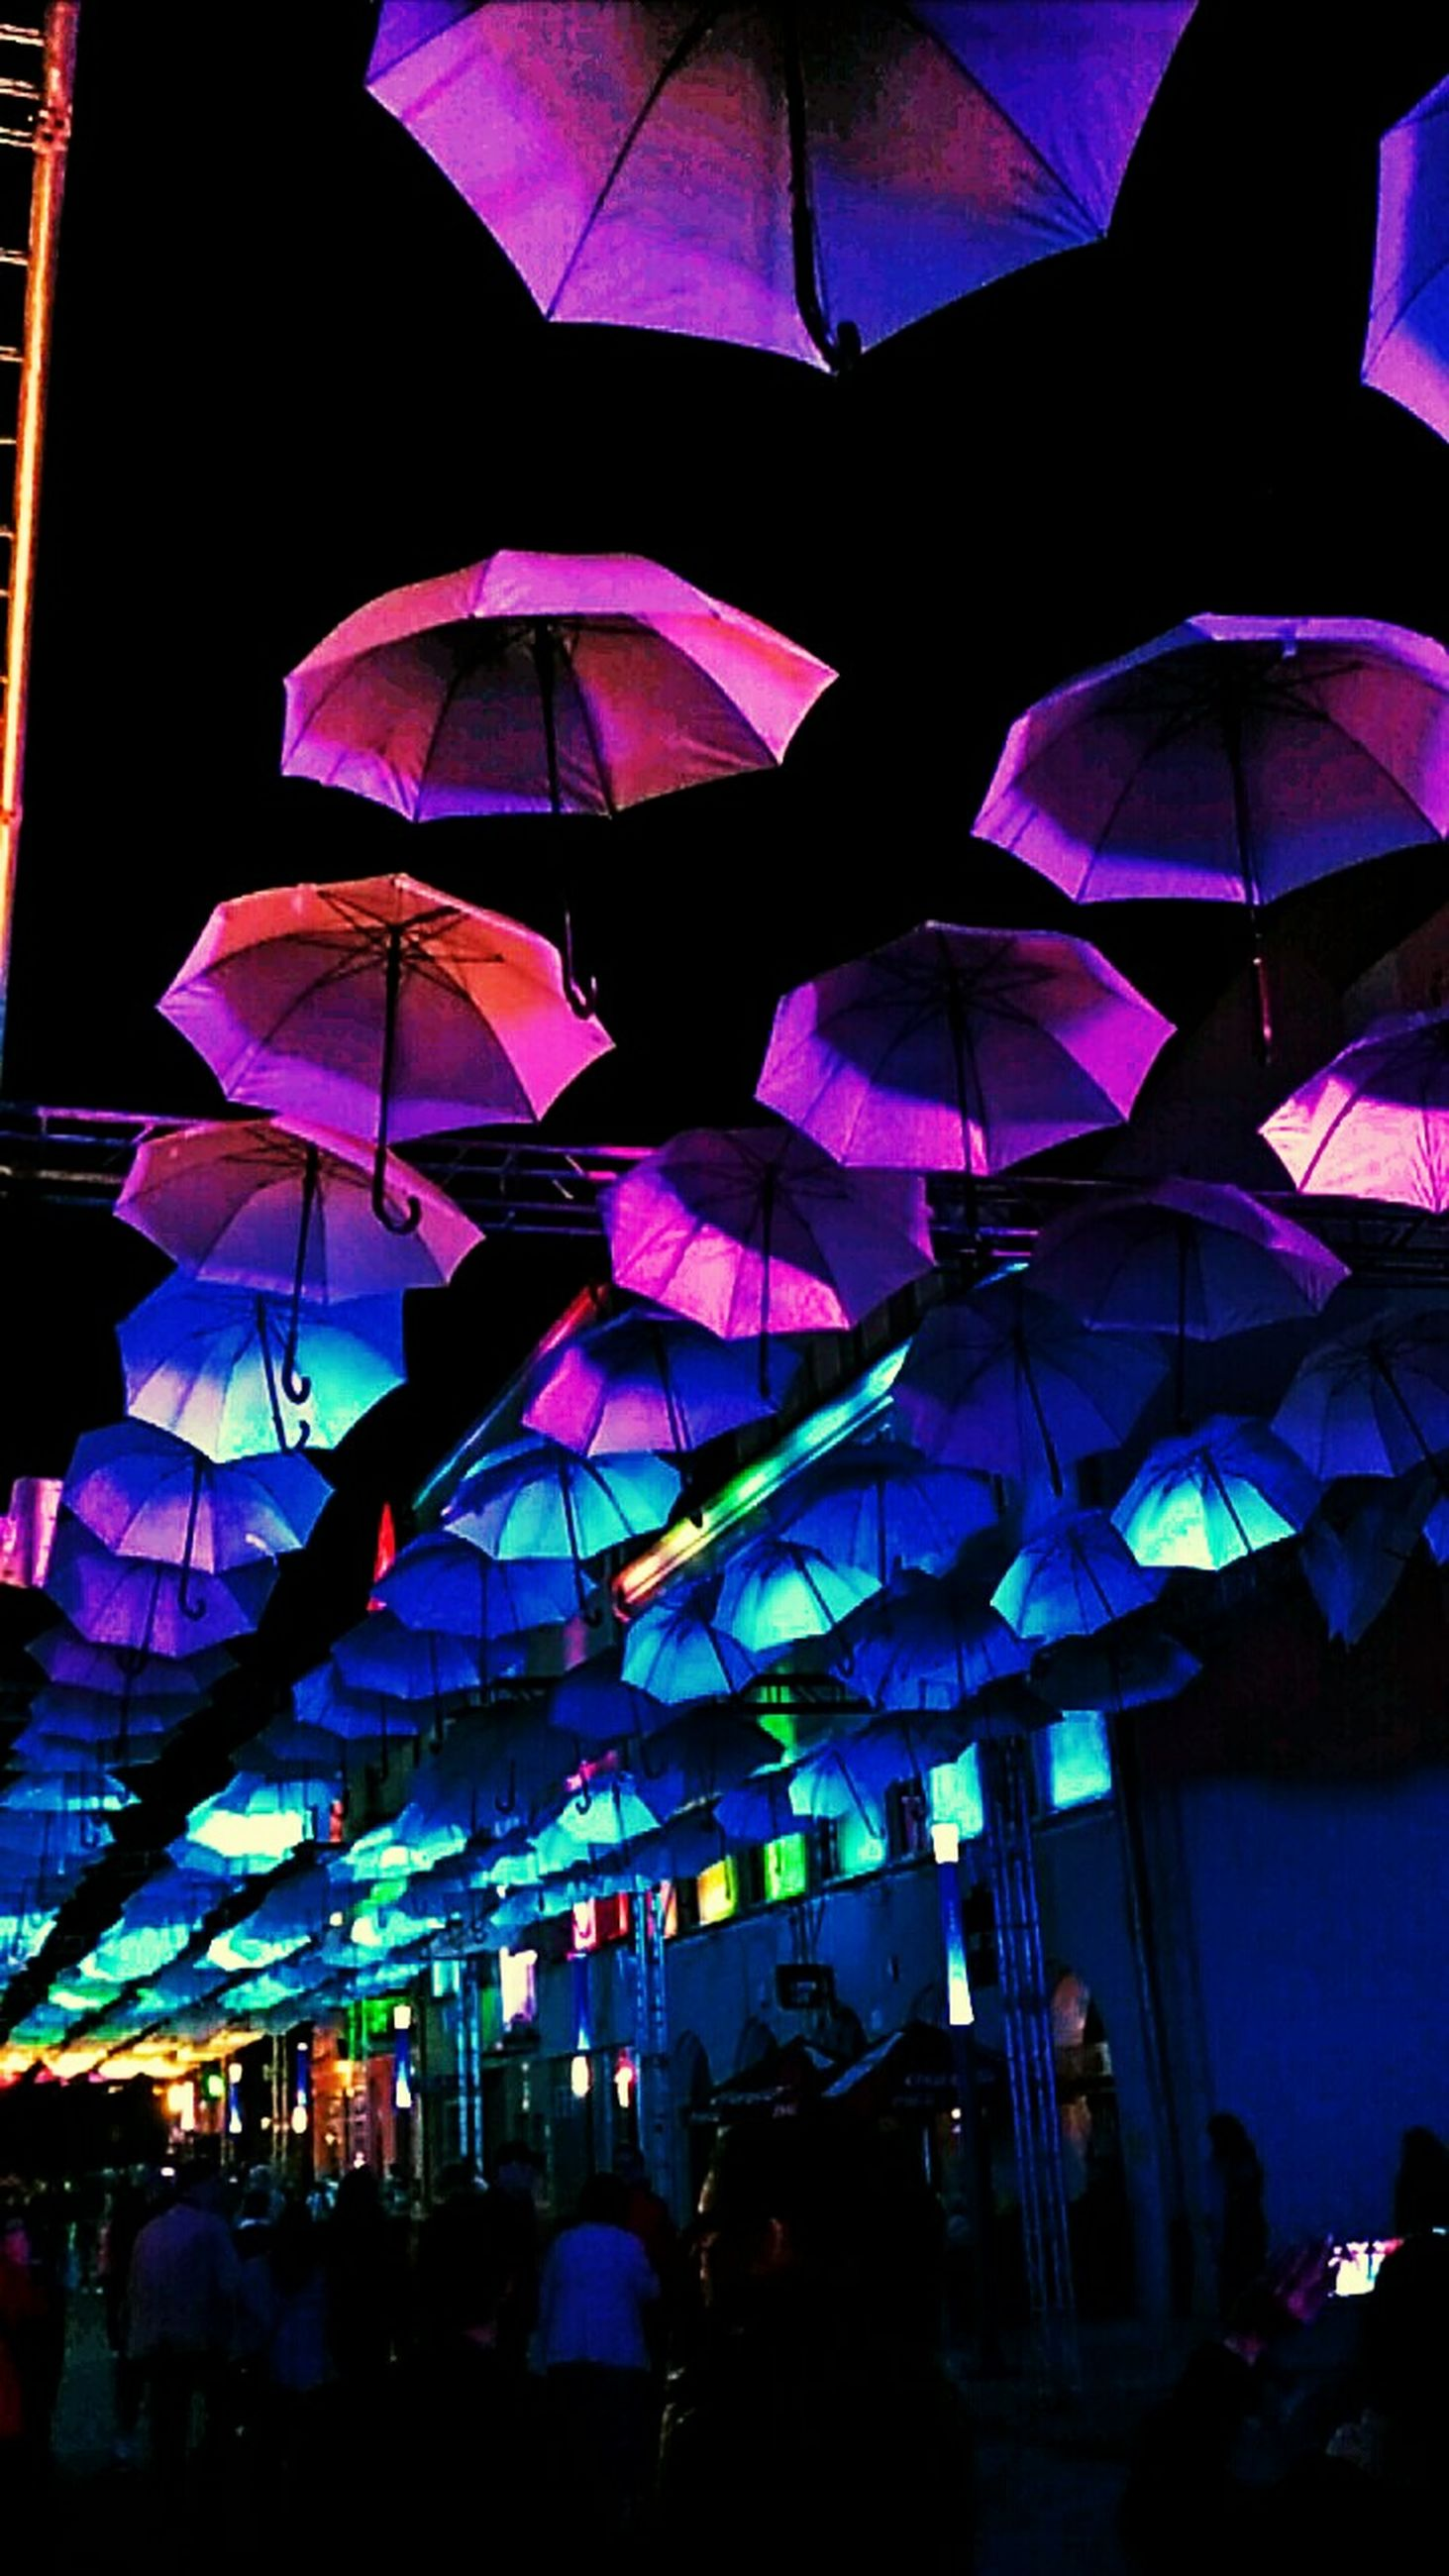 umbrella, multi colored, illuminated, low angle view, creativity, outdoors, city life, vibrant color, tourism, sky, architectural feature, pink color, colorful, majestic, modern